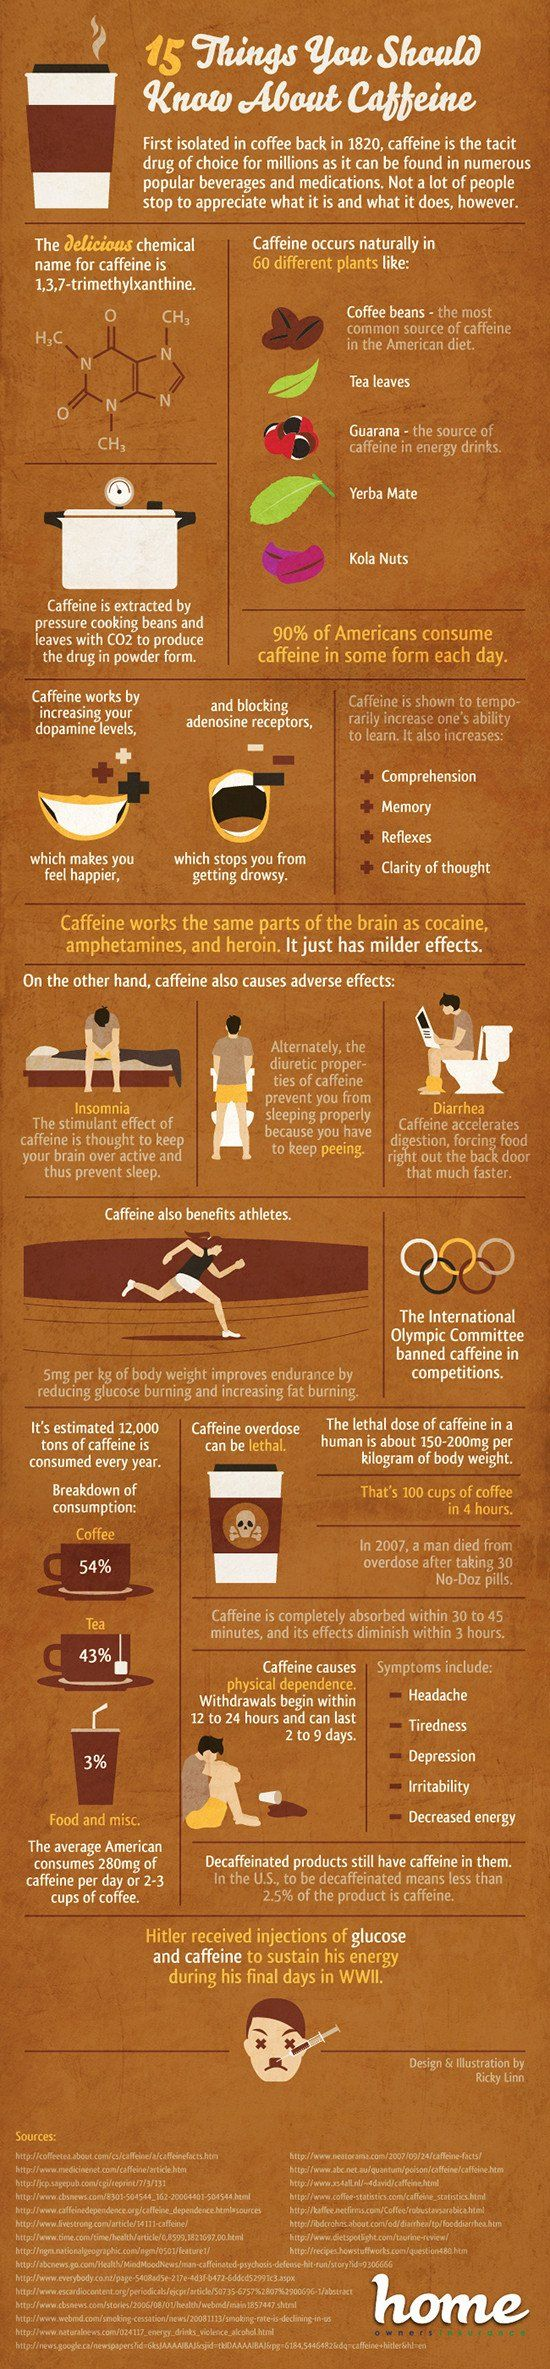 15 Things You Should Know About Caffeine: Things To Know, Caffeine Infographic, Facts, Coff Lovers, 15 Things, Coffee Infographic, Drinks, Infographics, Info Graphics